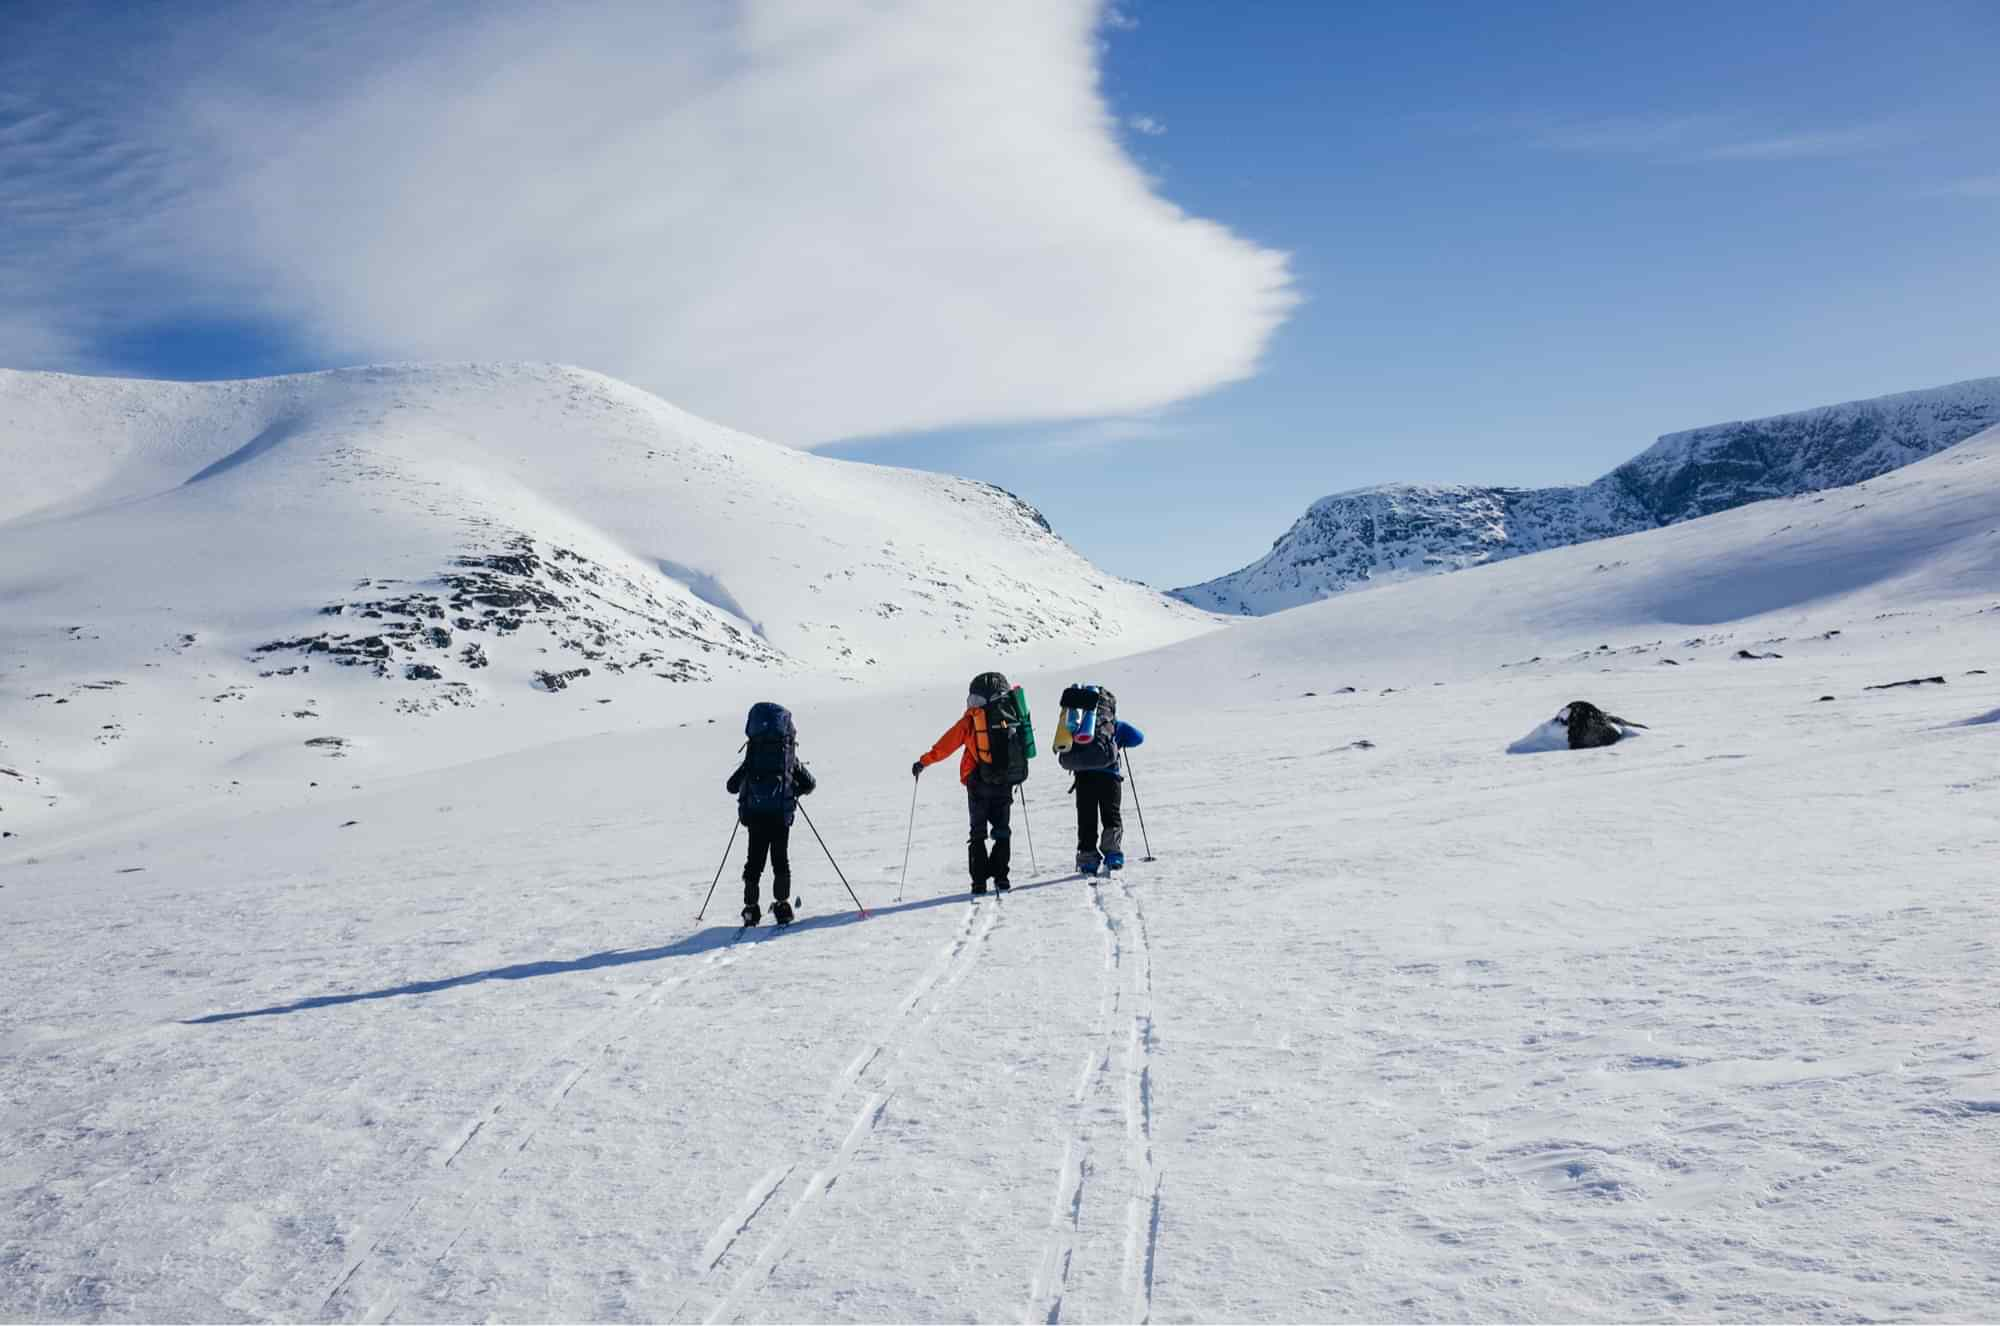 Group of 3 cross country skiers on mountain